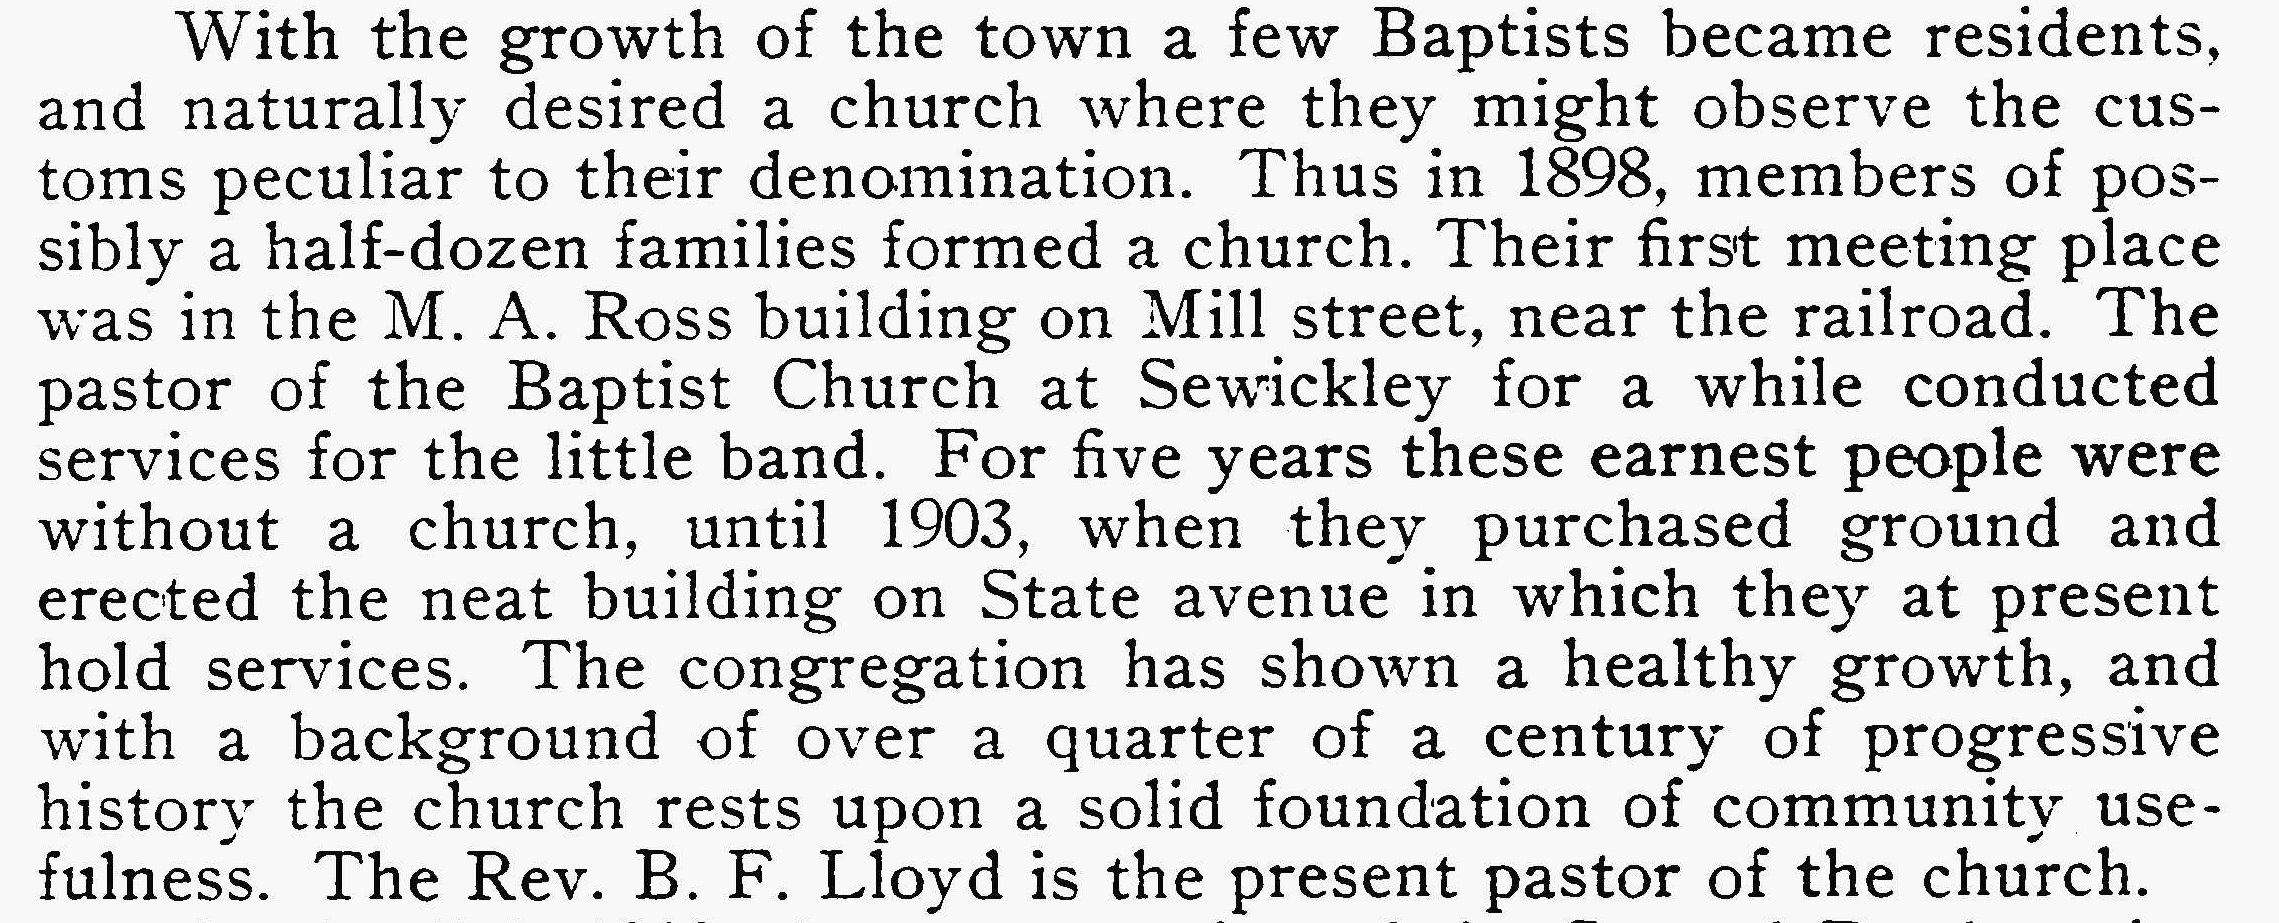 First Baptist Church - Edward S Maurey - Where the West Began (pg64).jpg